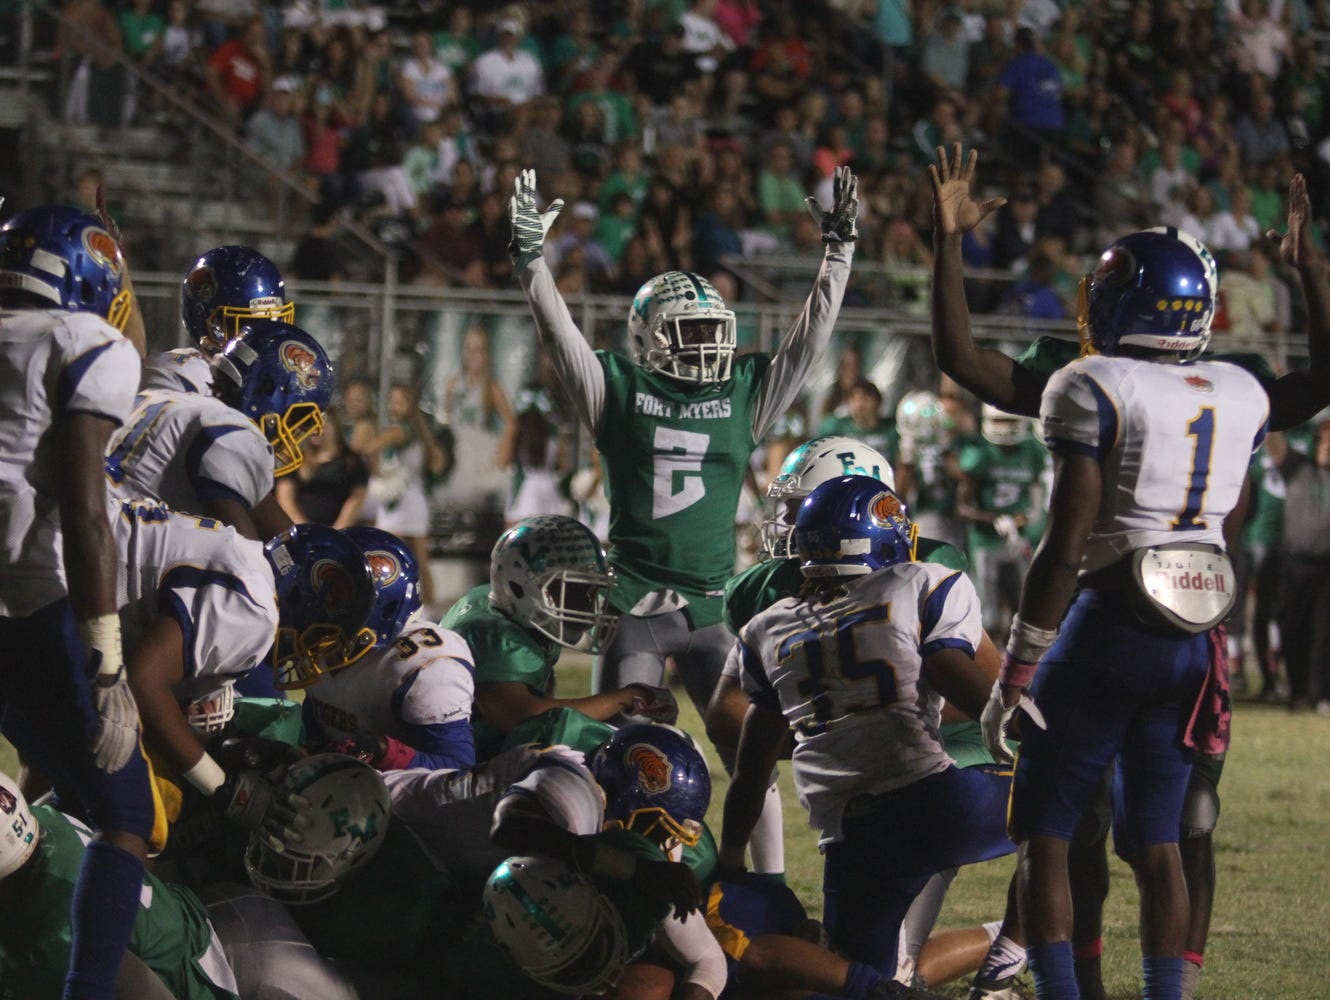 Fort Myers takes on Clewiston in high school football on Friday, October 23, 2015, at Fort Myers High School.